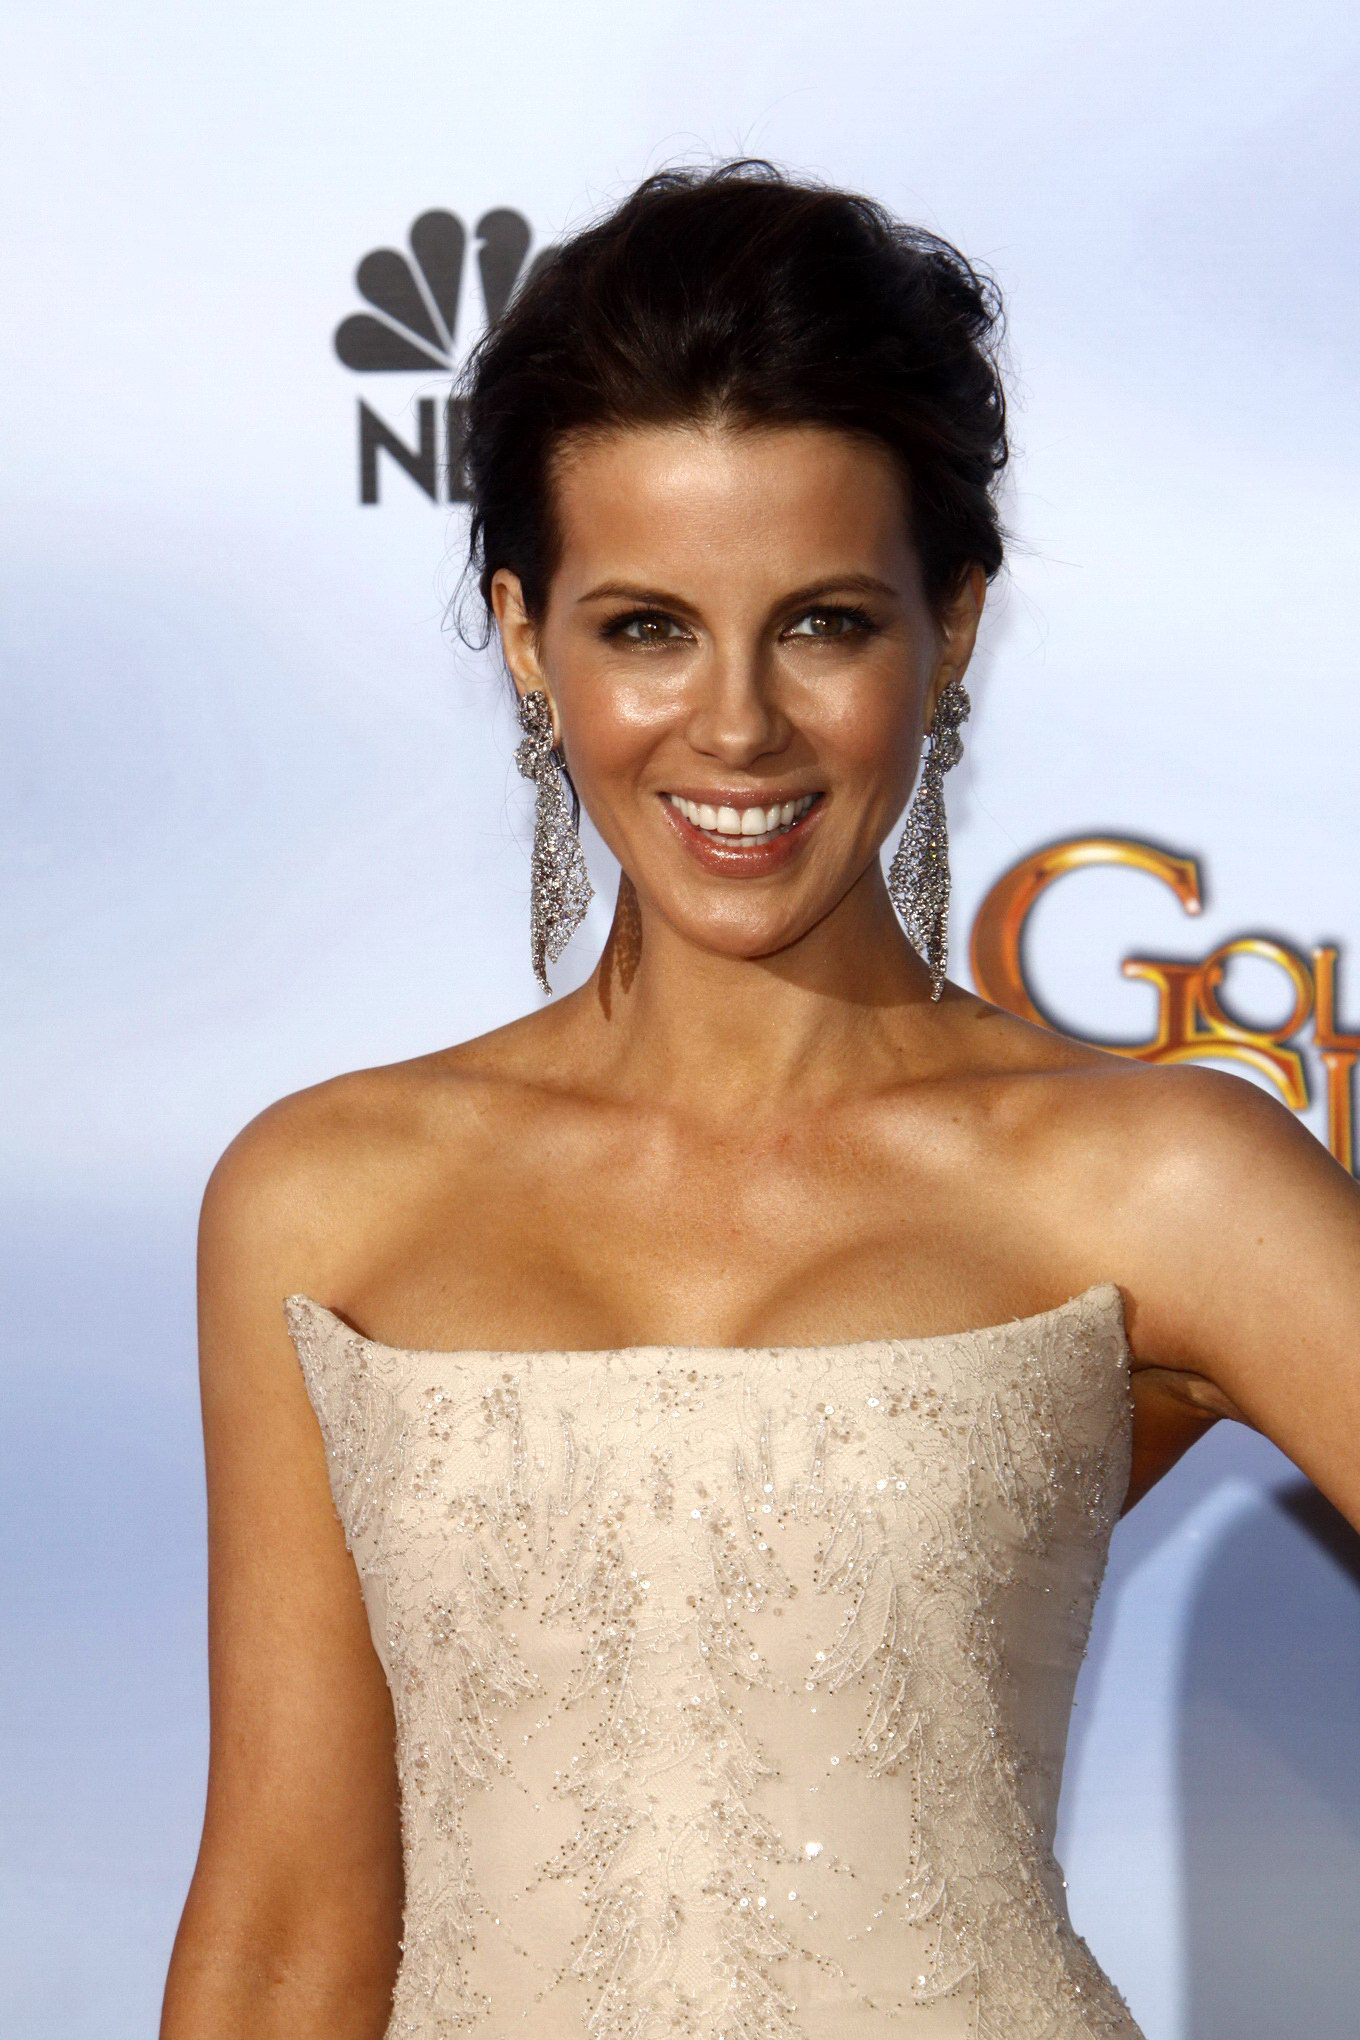 kate beckinsale shows cleavage wearing a strapless maxy